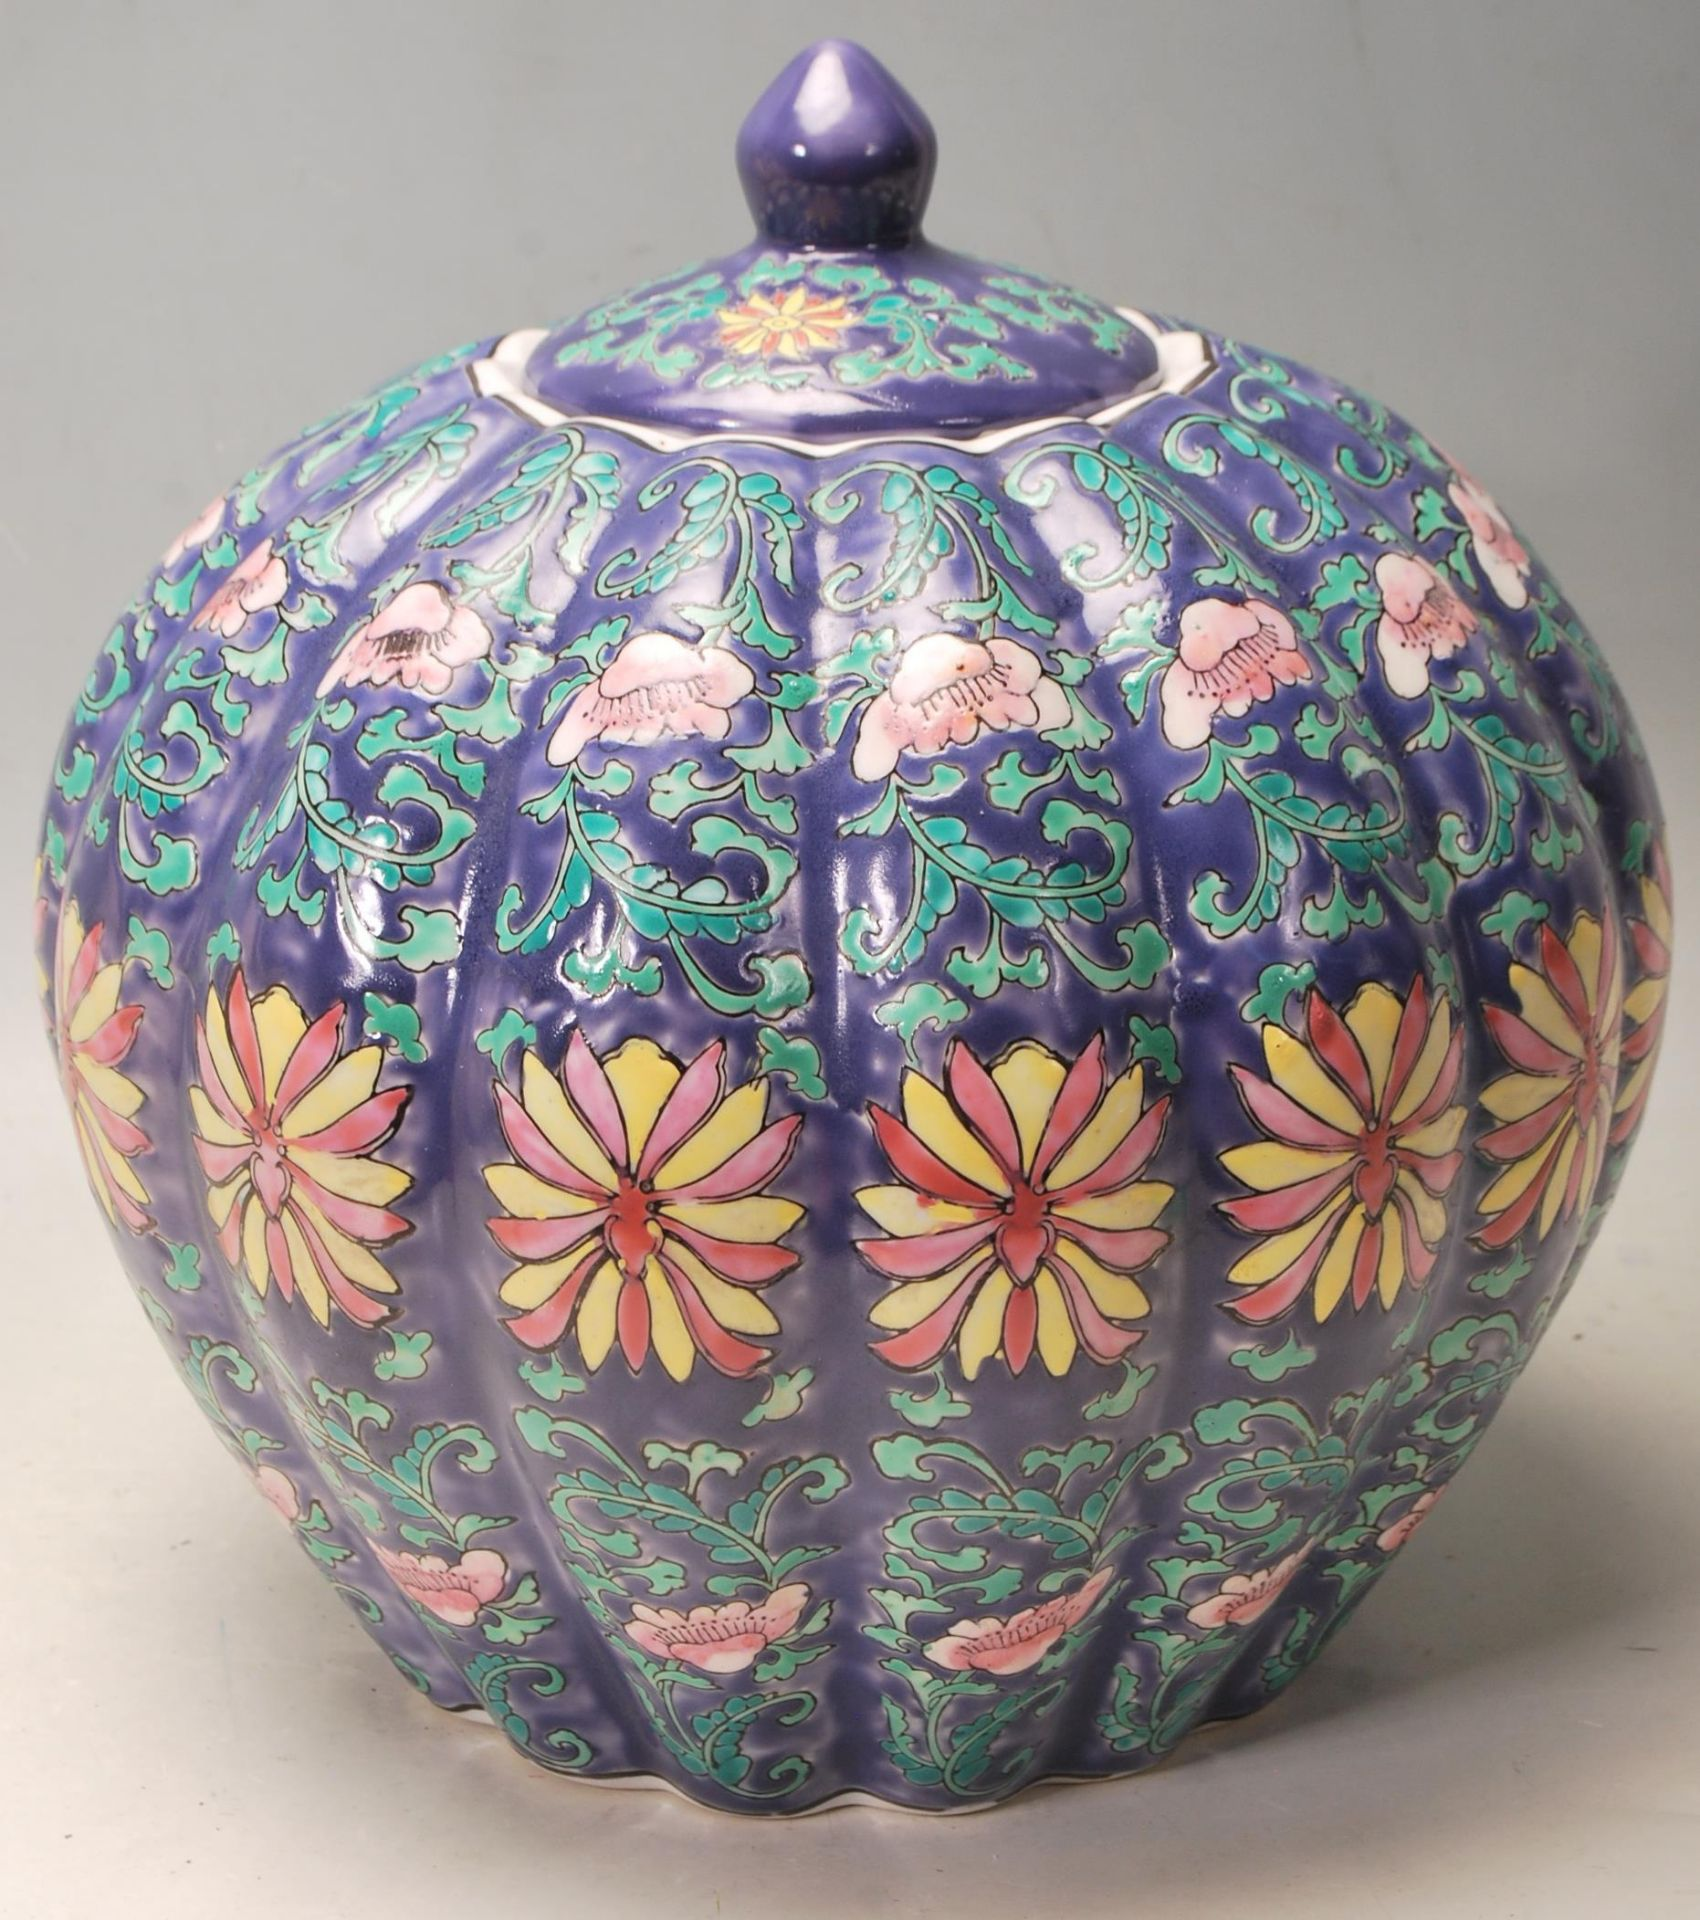 LATE 20TH CENTURY CHINESE PUMPKIN VASE - Image 3 of 5